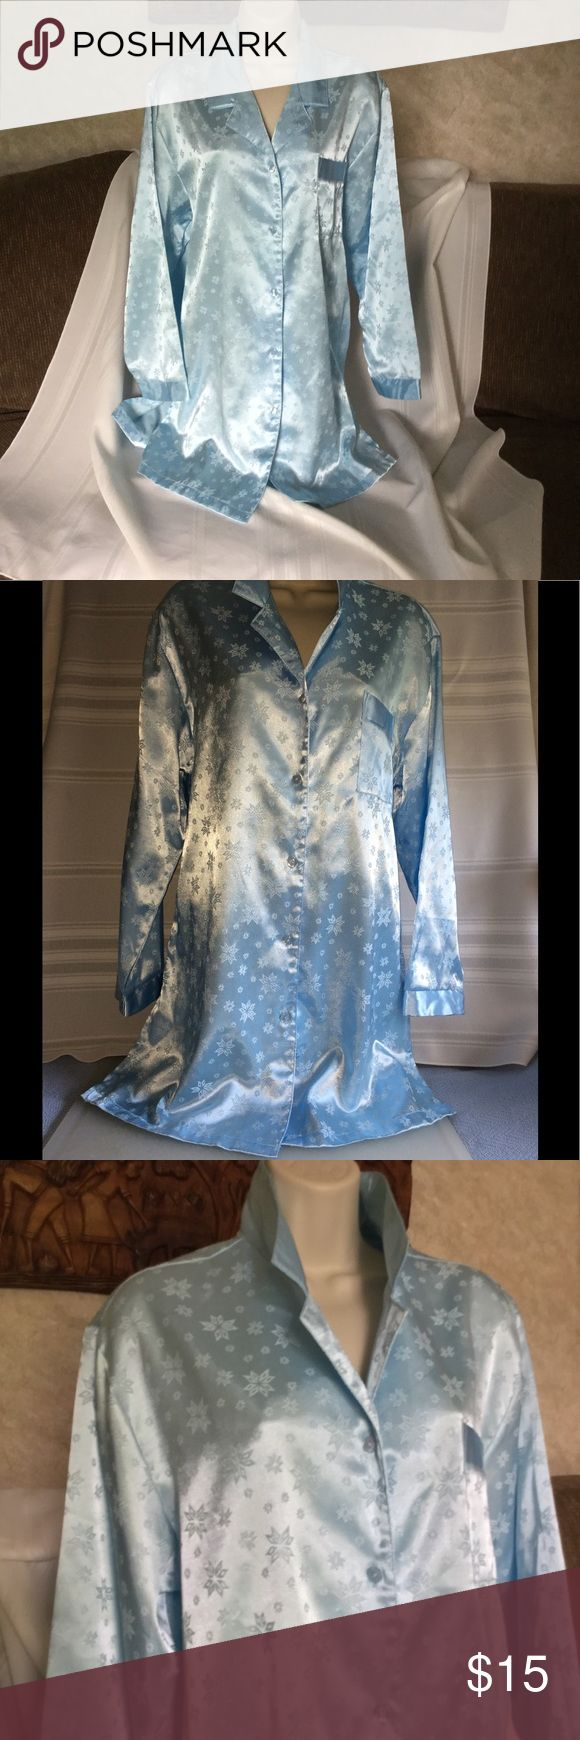 """Blue Satin Sleep Shirt by Kathryn Sz M Blue Satin Sleep shirt by Kathryn size M. Bust is 21"""" across from arm to arm. Length is 33 inches from shoulder to hem. 83% polyester and 17% cotton.  New condition. Kathryn Intimates & Sleepwear"""